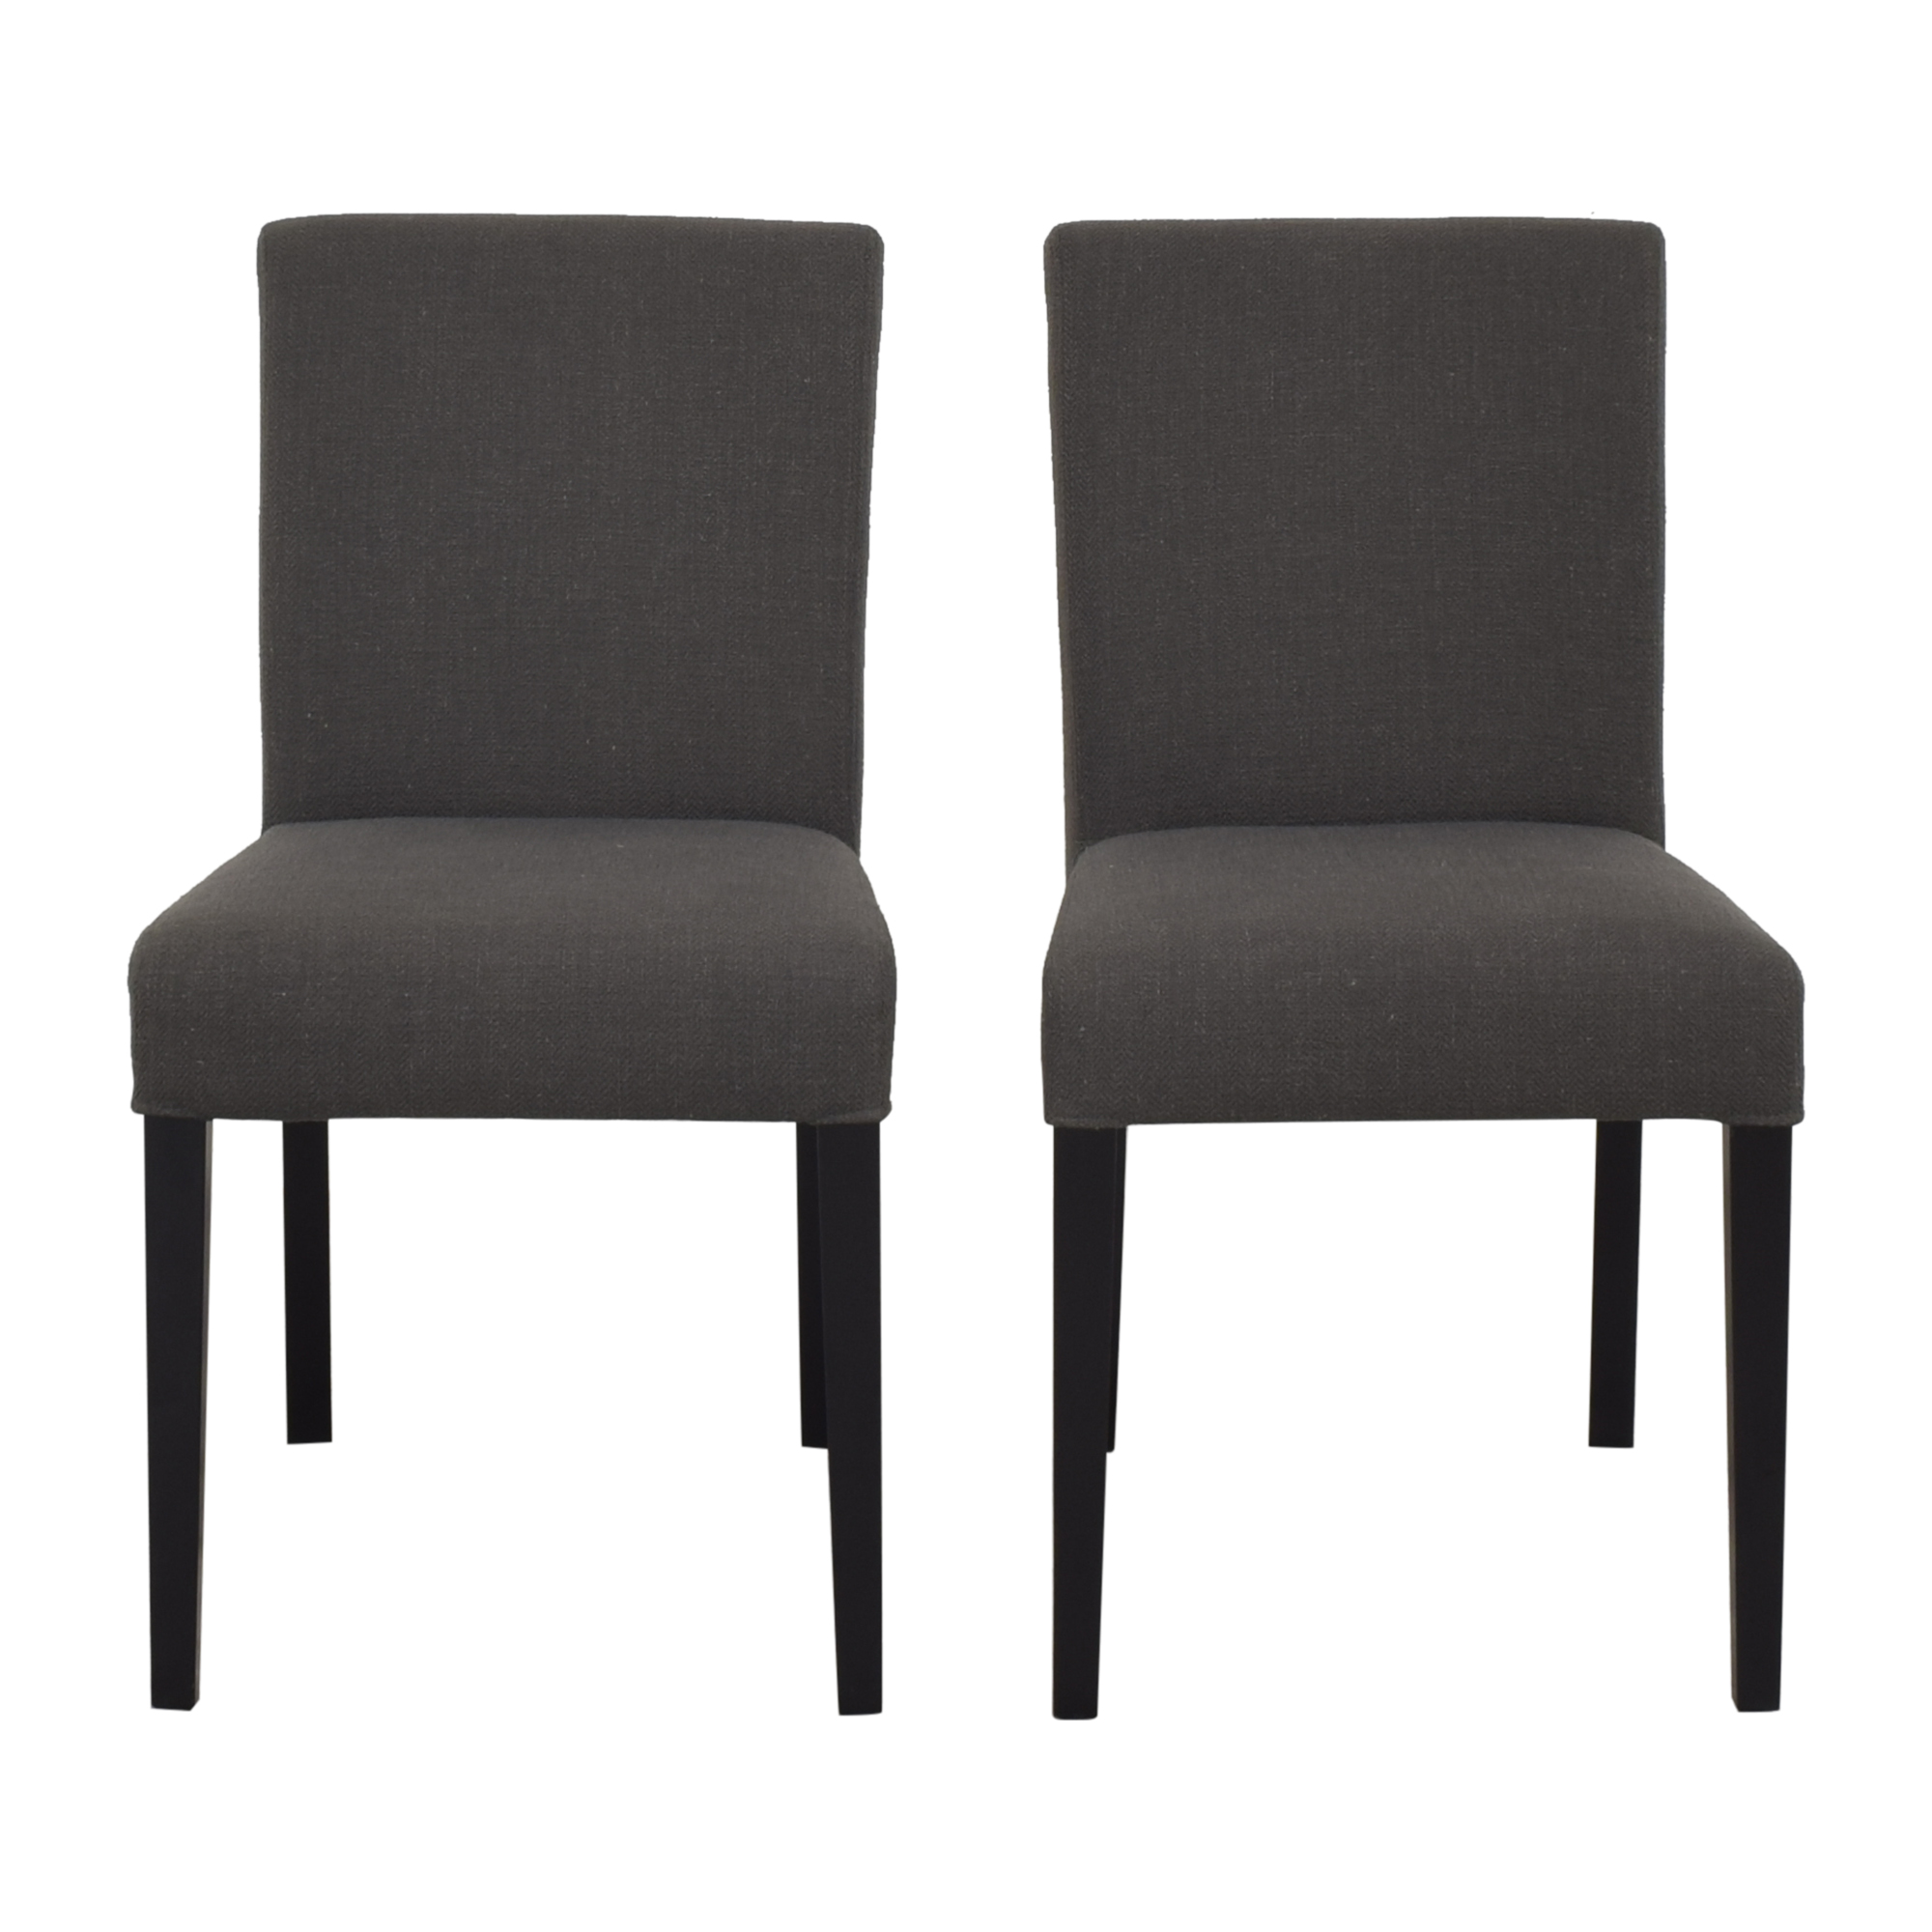 buy Crate & Barrel Lowe Dining Chairs Crate & Barrel